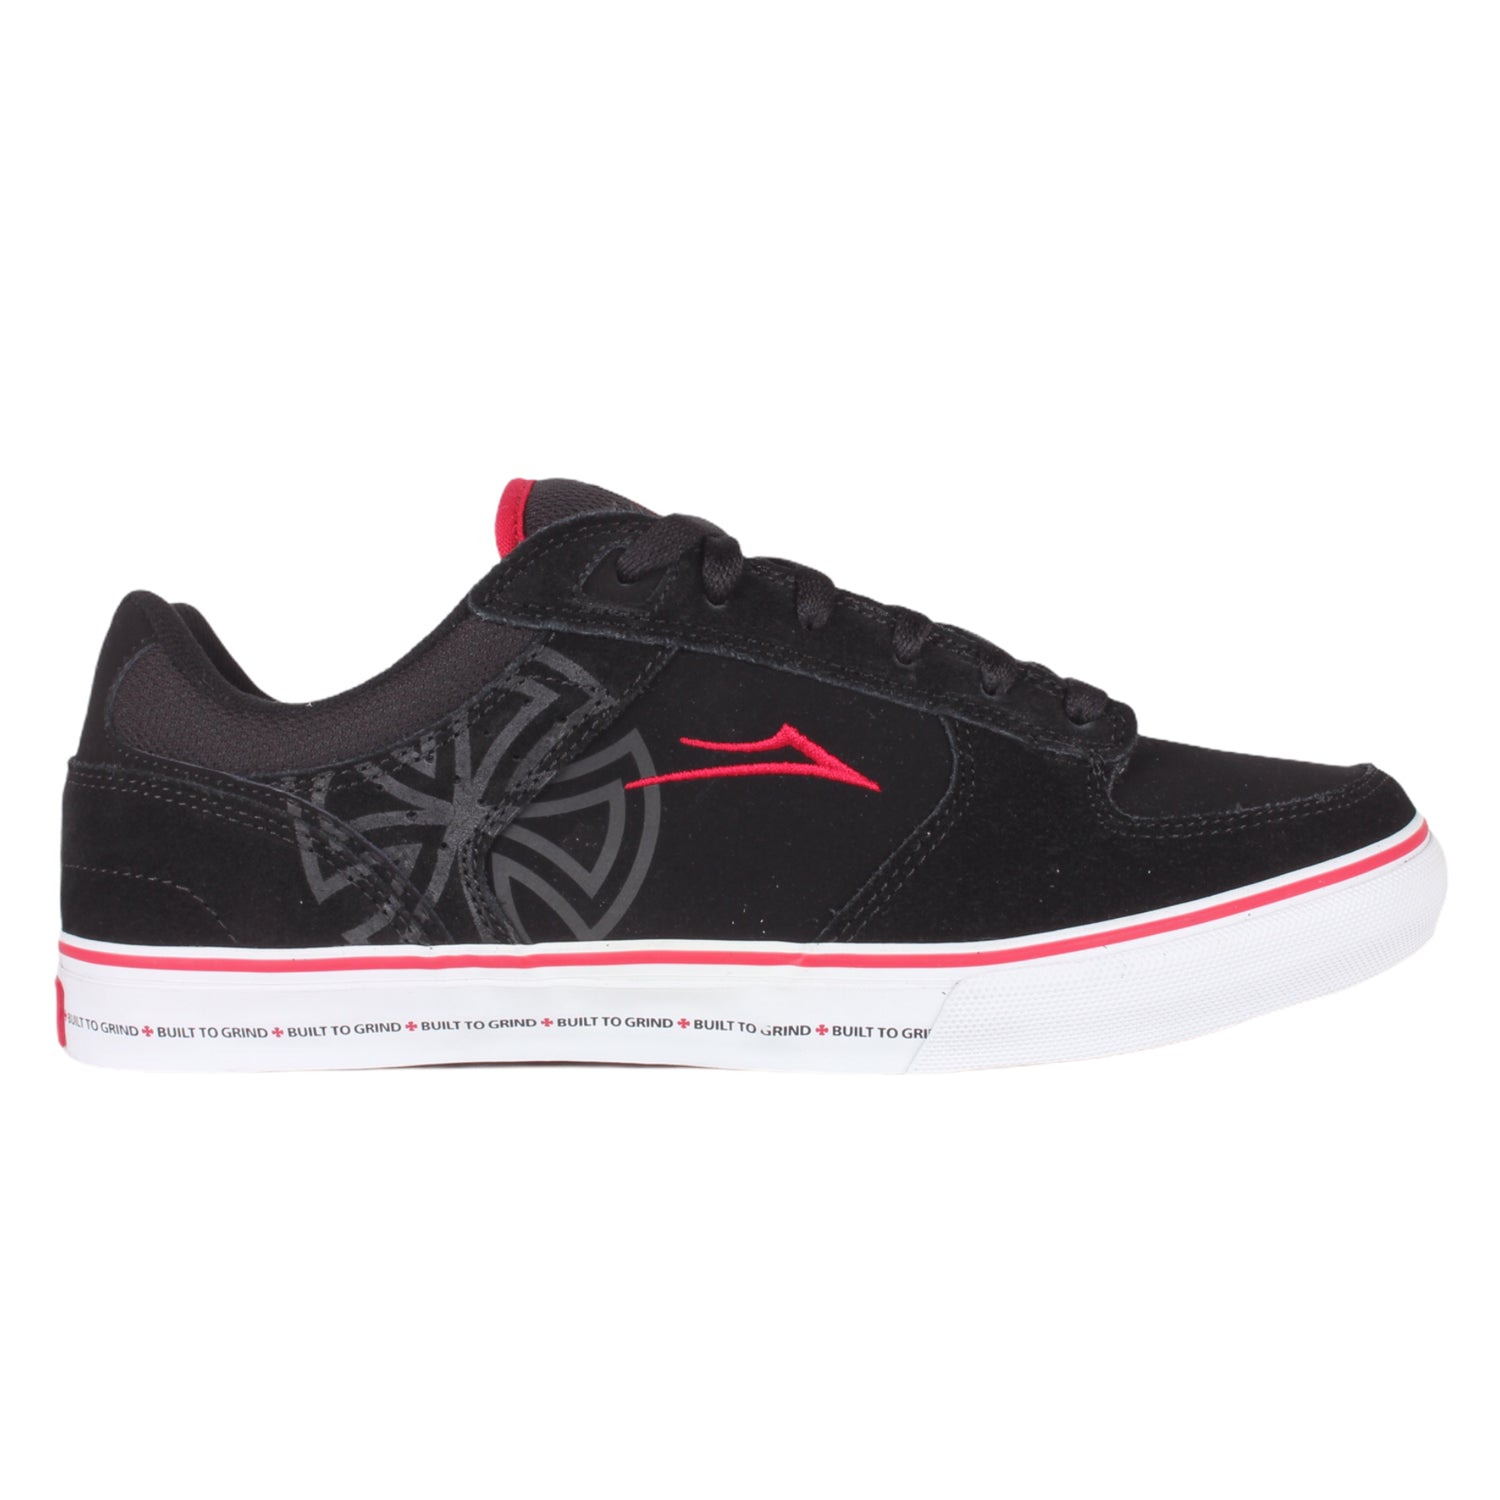 Overripe Lakai Koston Select Independent Trucks Black/Red (2005)